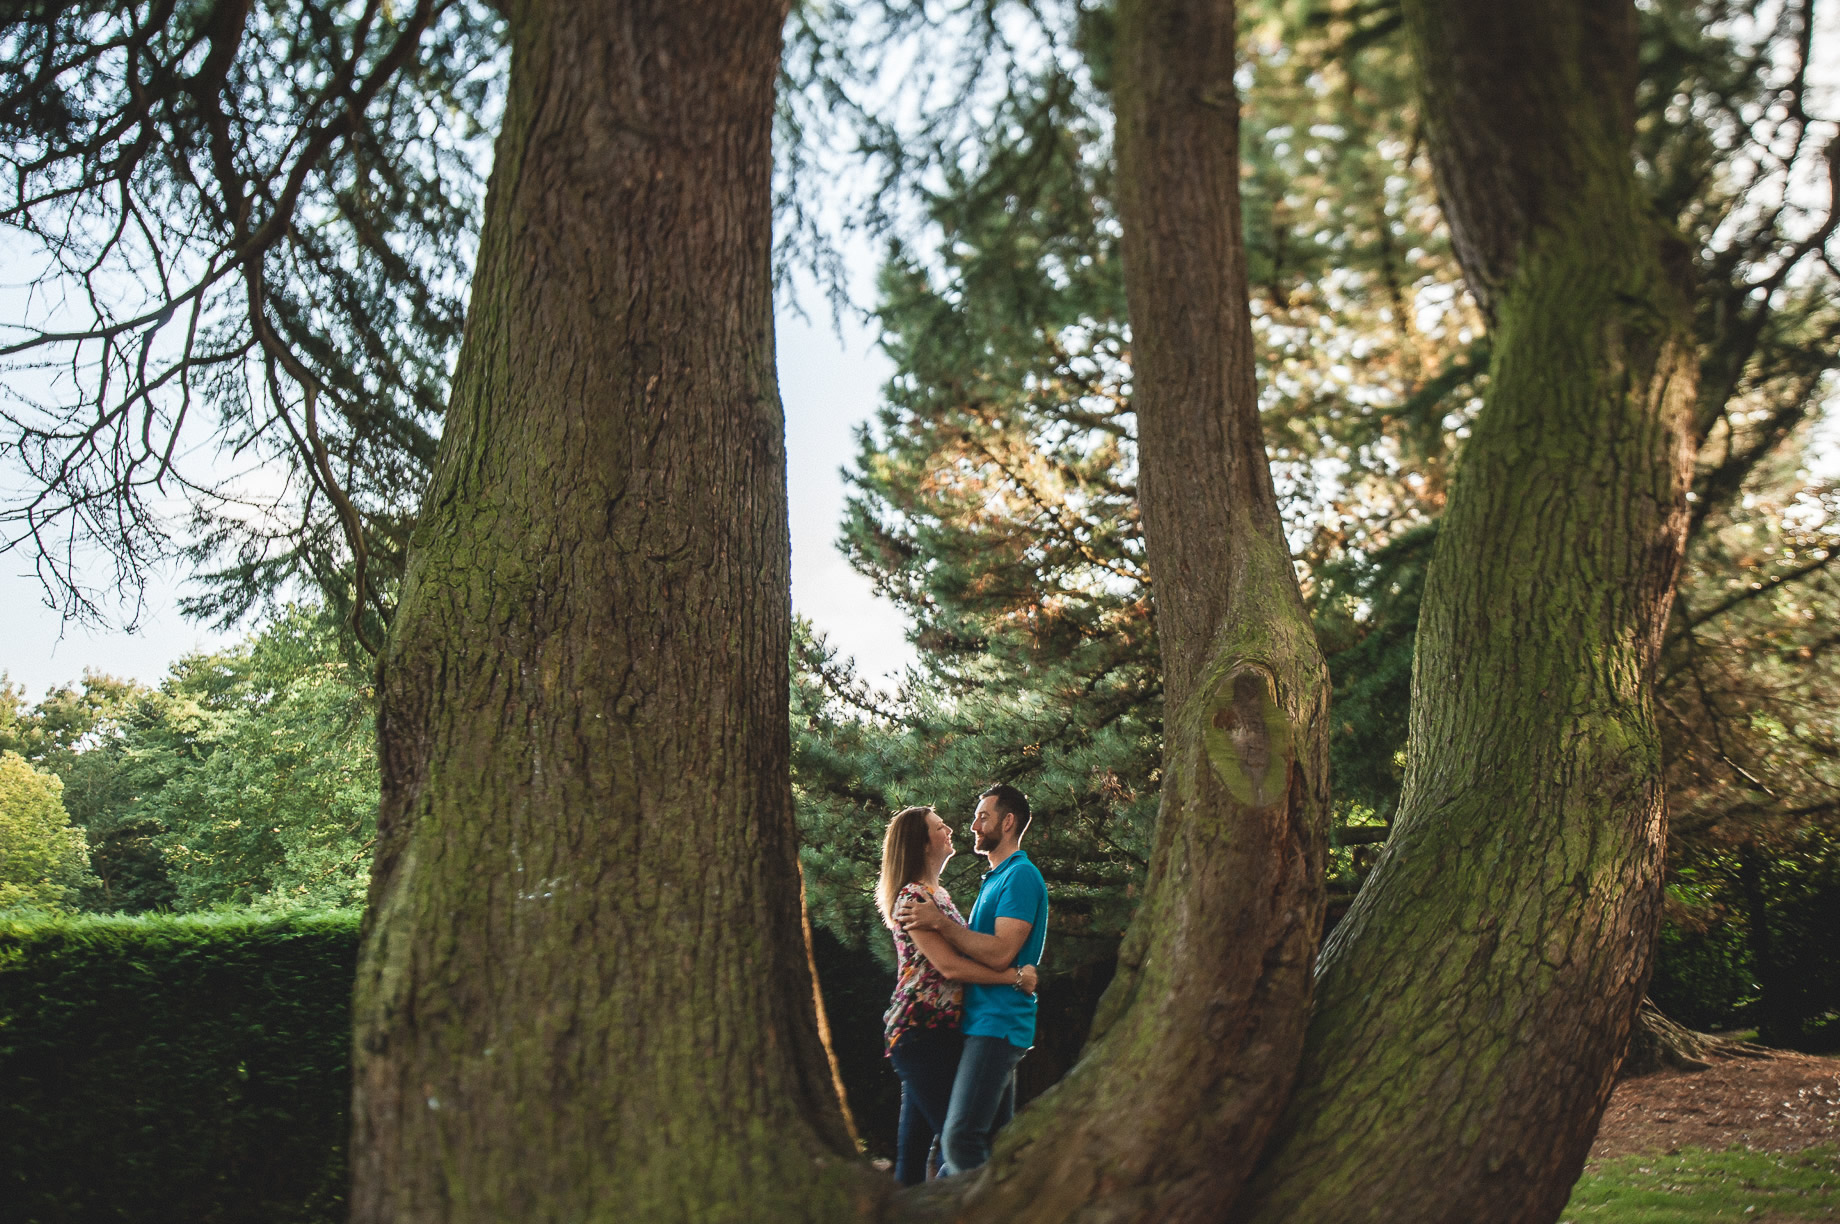 Keri and Paul's Pre-Wedding Shoot at Walton Gardens 015